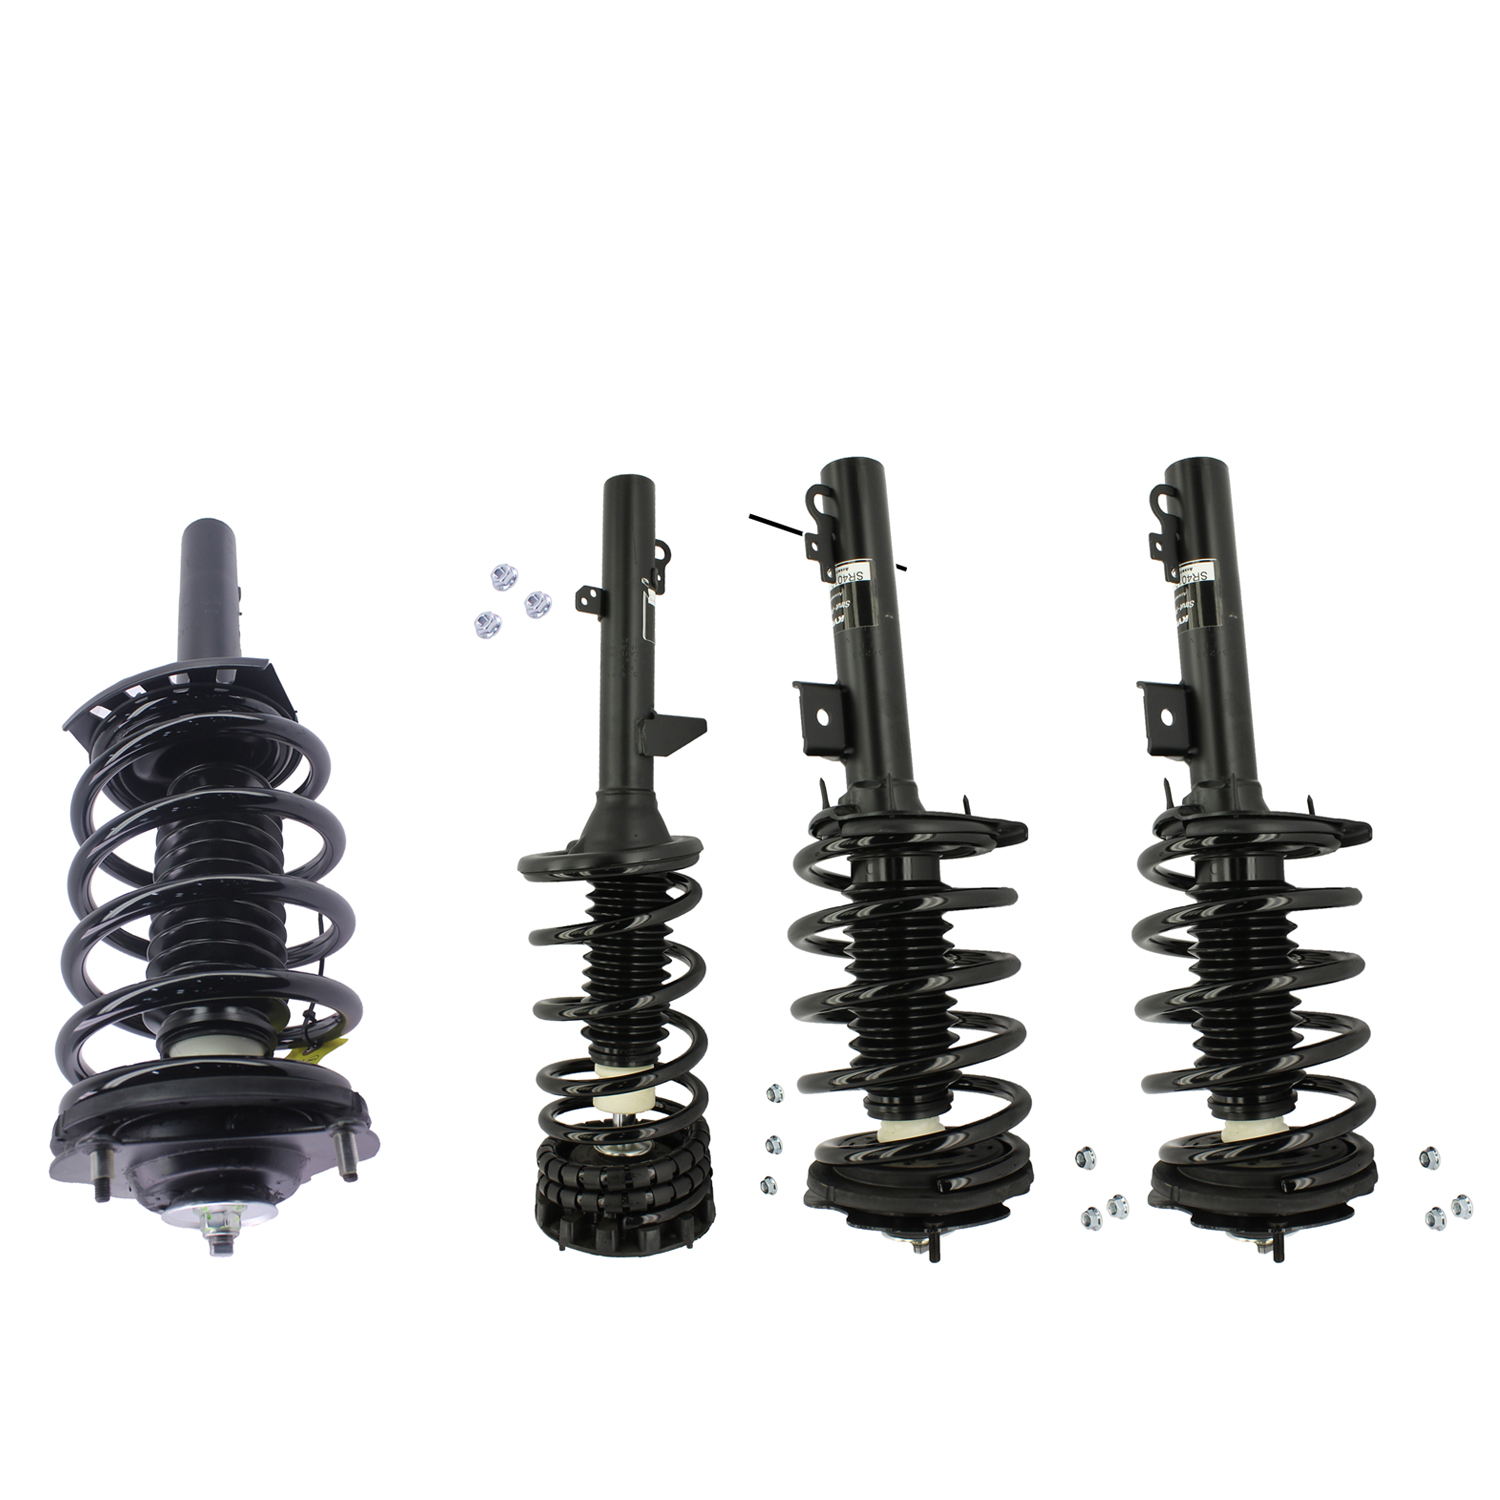 Kyb Strut Plus Shock Spring Assembly Set For 2000 2007 Ford Taurus Fwd Ebay